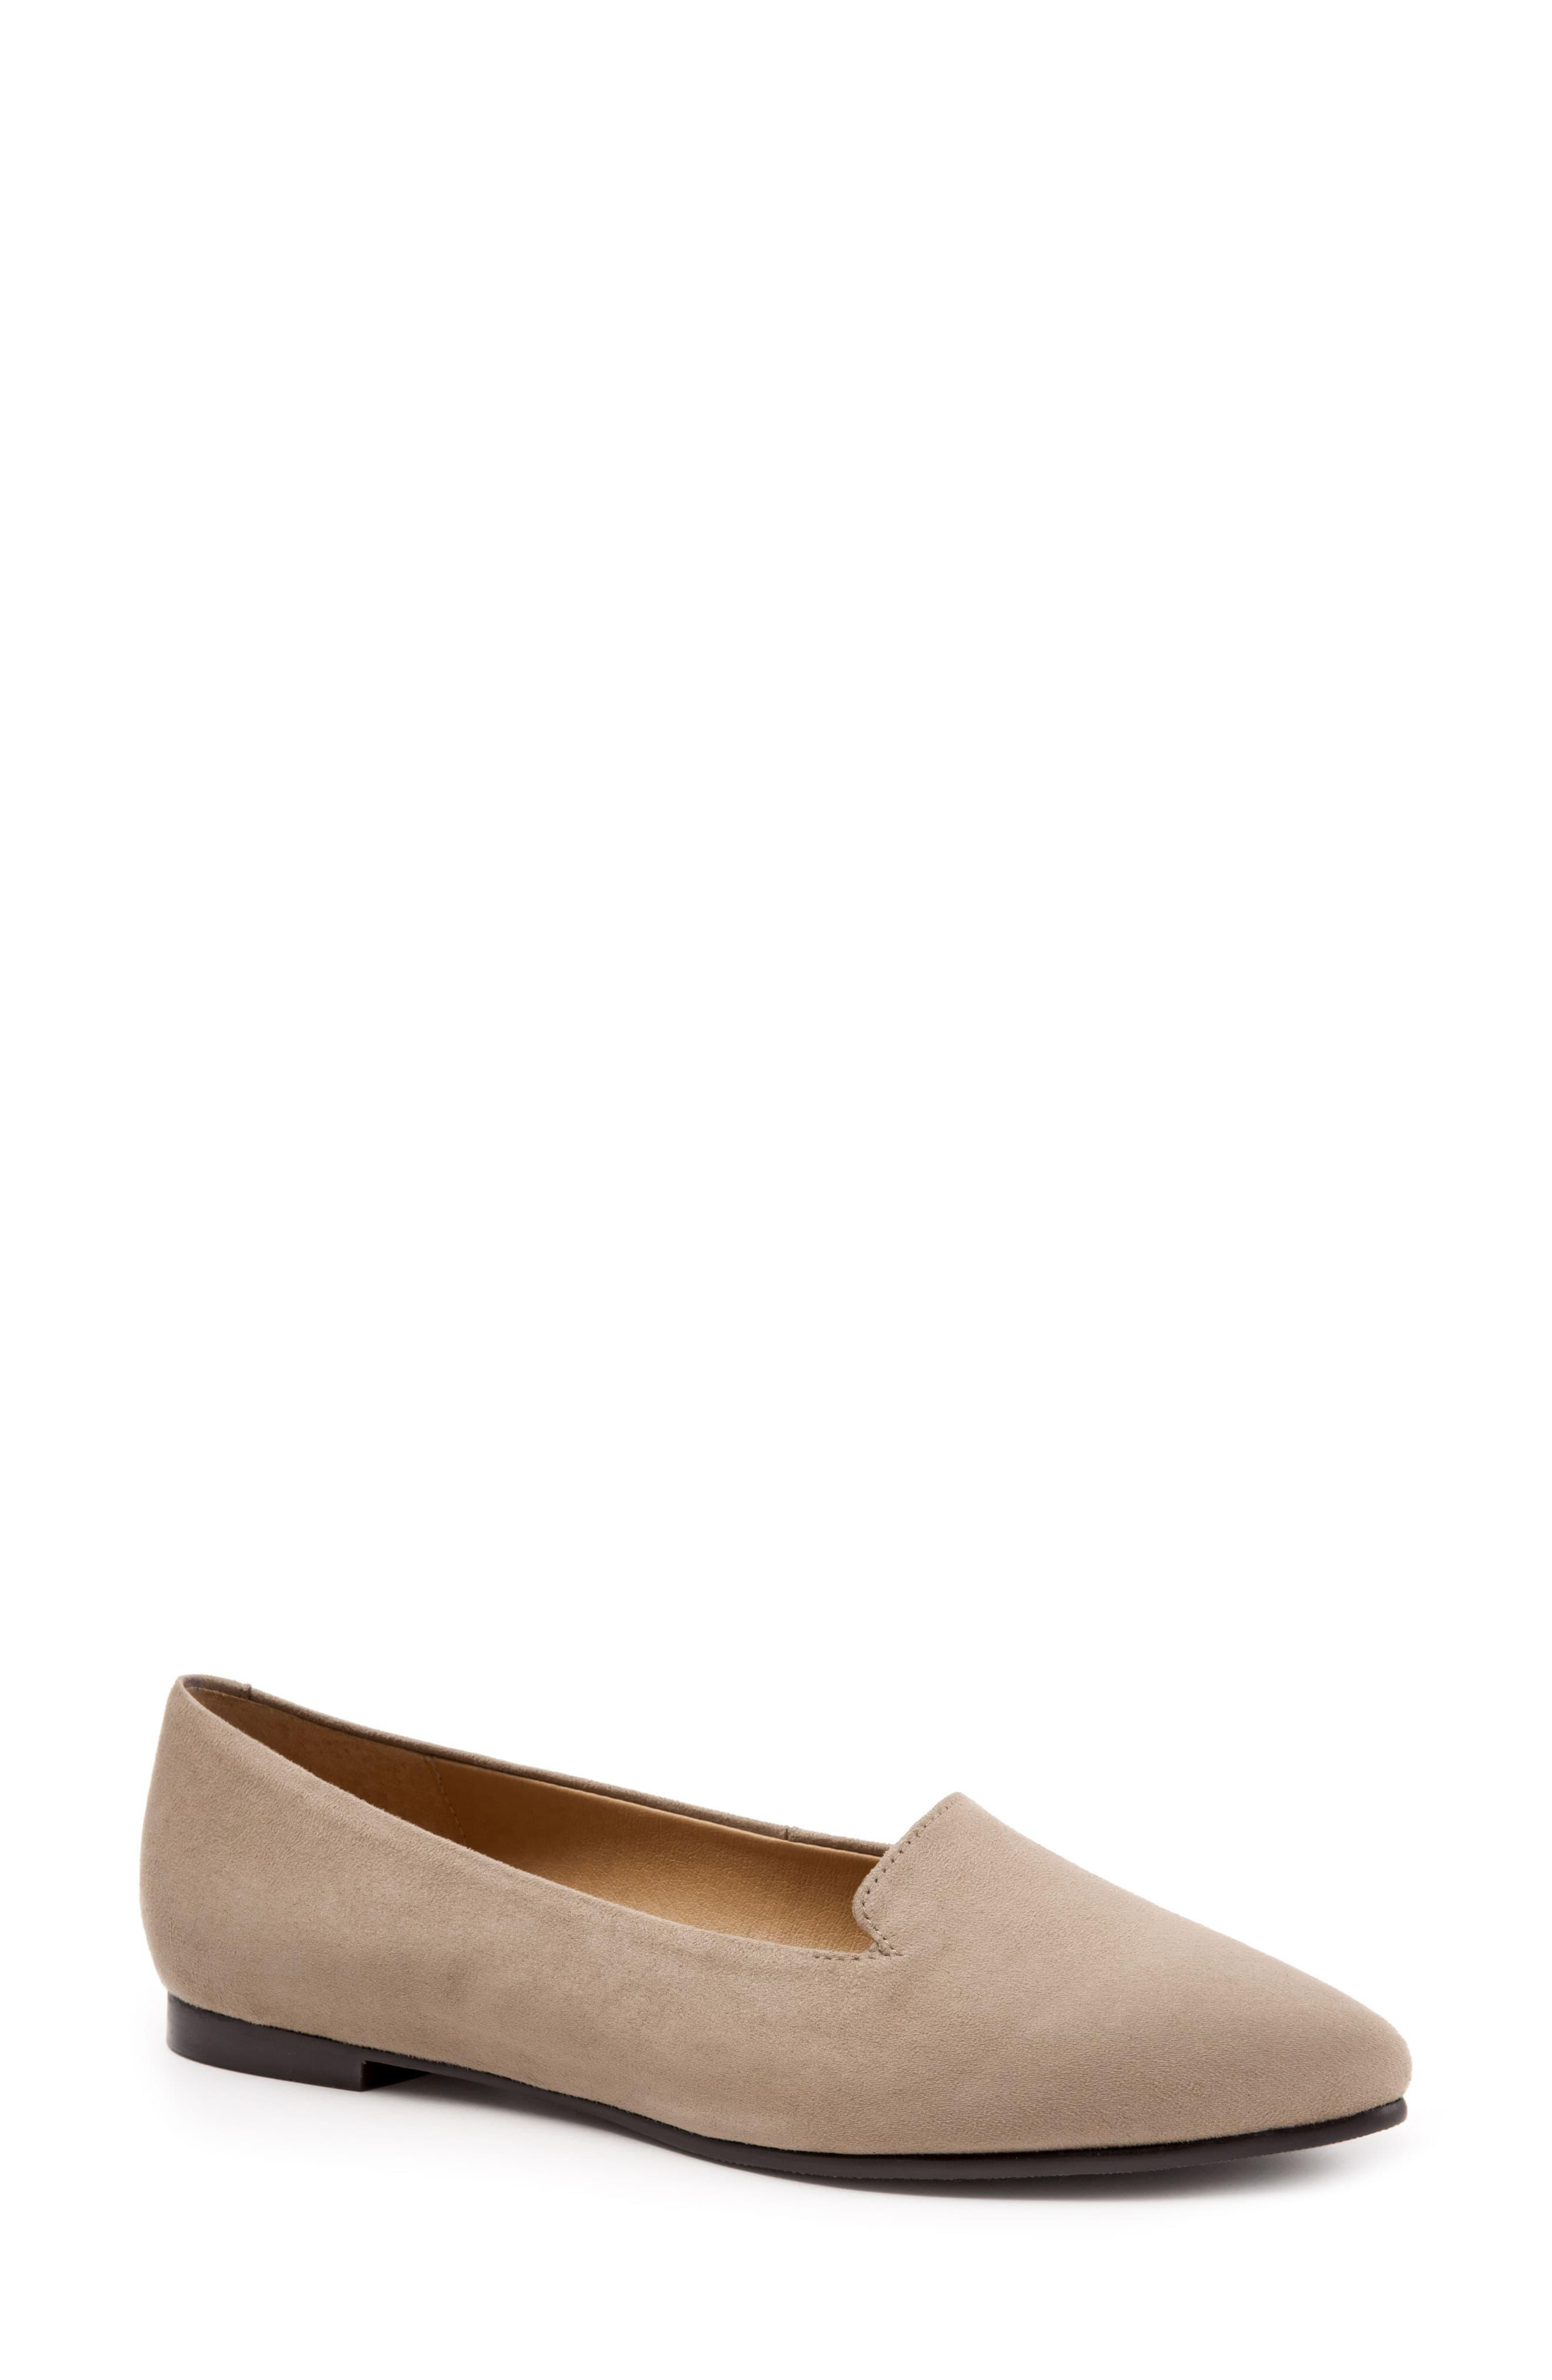 Trotters Harlowe Pointed Toe Loafer - Lyst